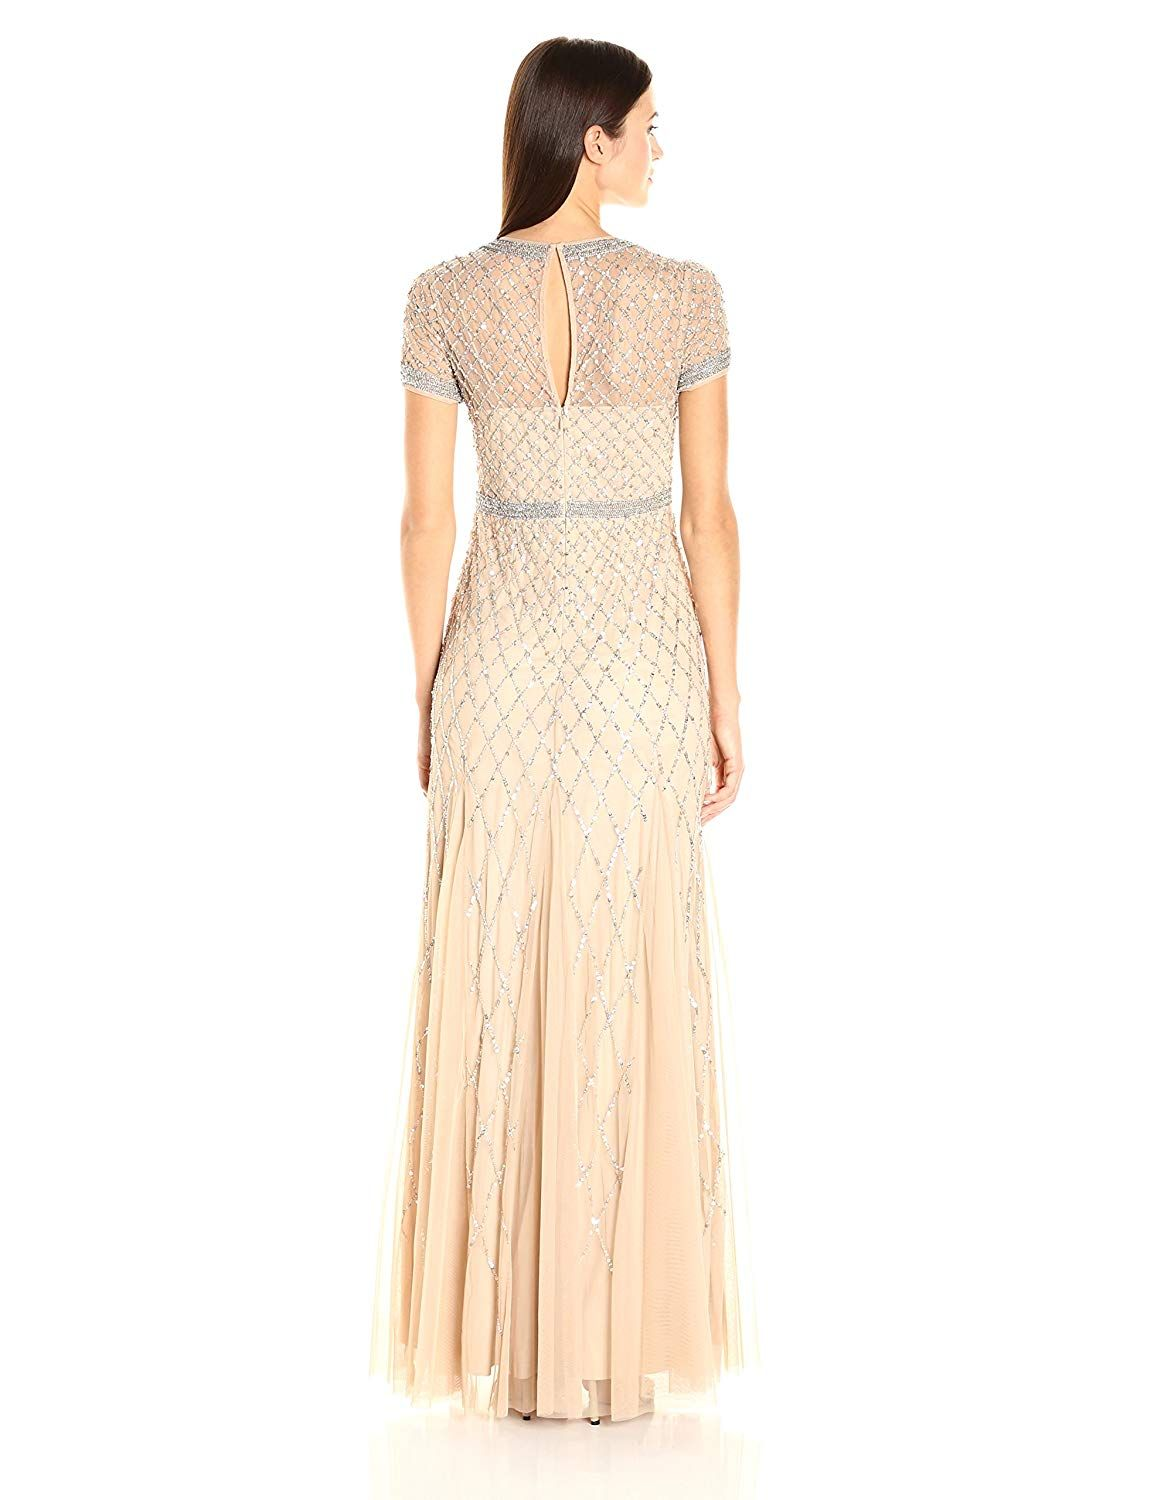 7b311072 Adrianna Papell Women's Short-Sleeve Beaded Mesh Gown 4.4 out of 5 stars 32  customer reviews Price: $270.00 - $320.00